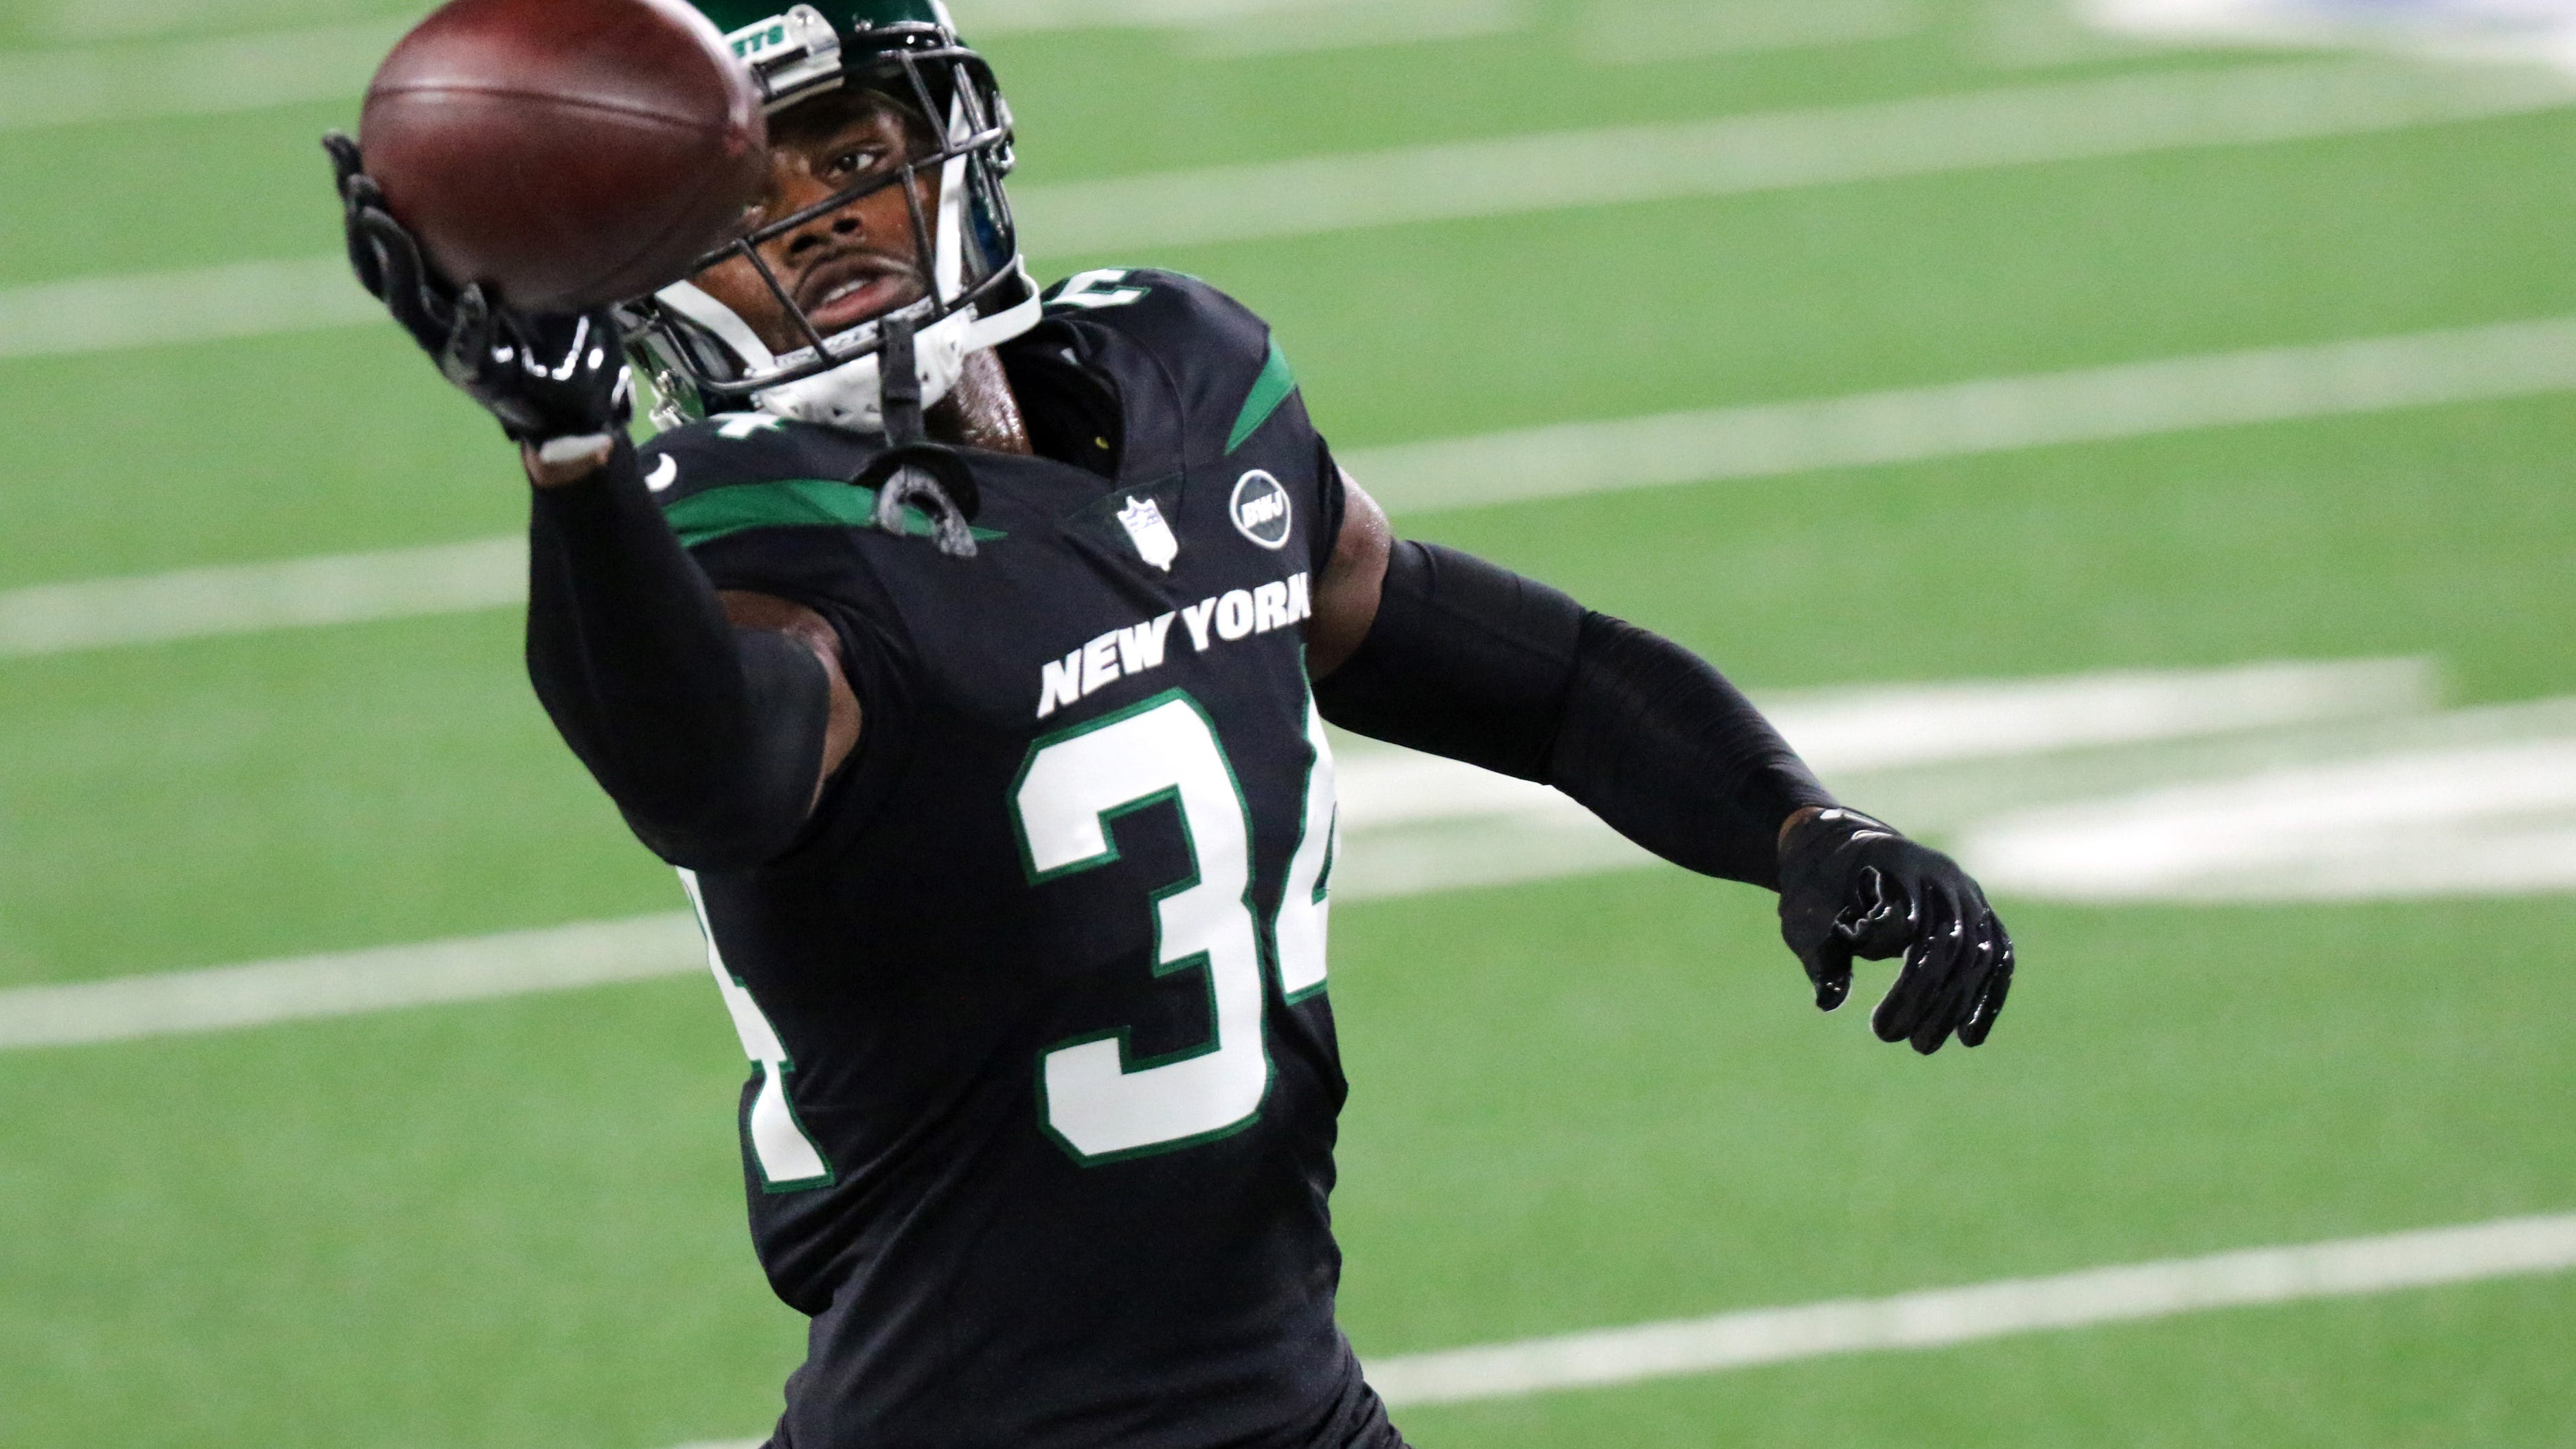 Saints sign former Jets CB Brian Poole ahead of training camp: report